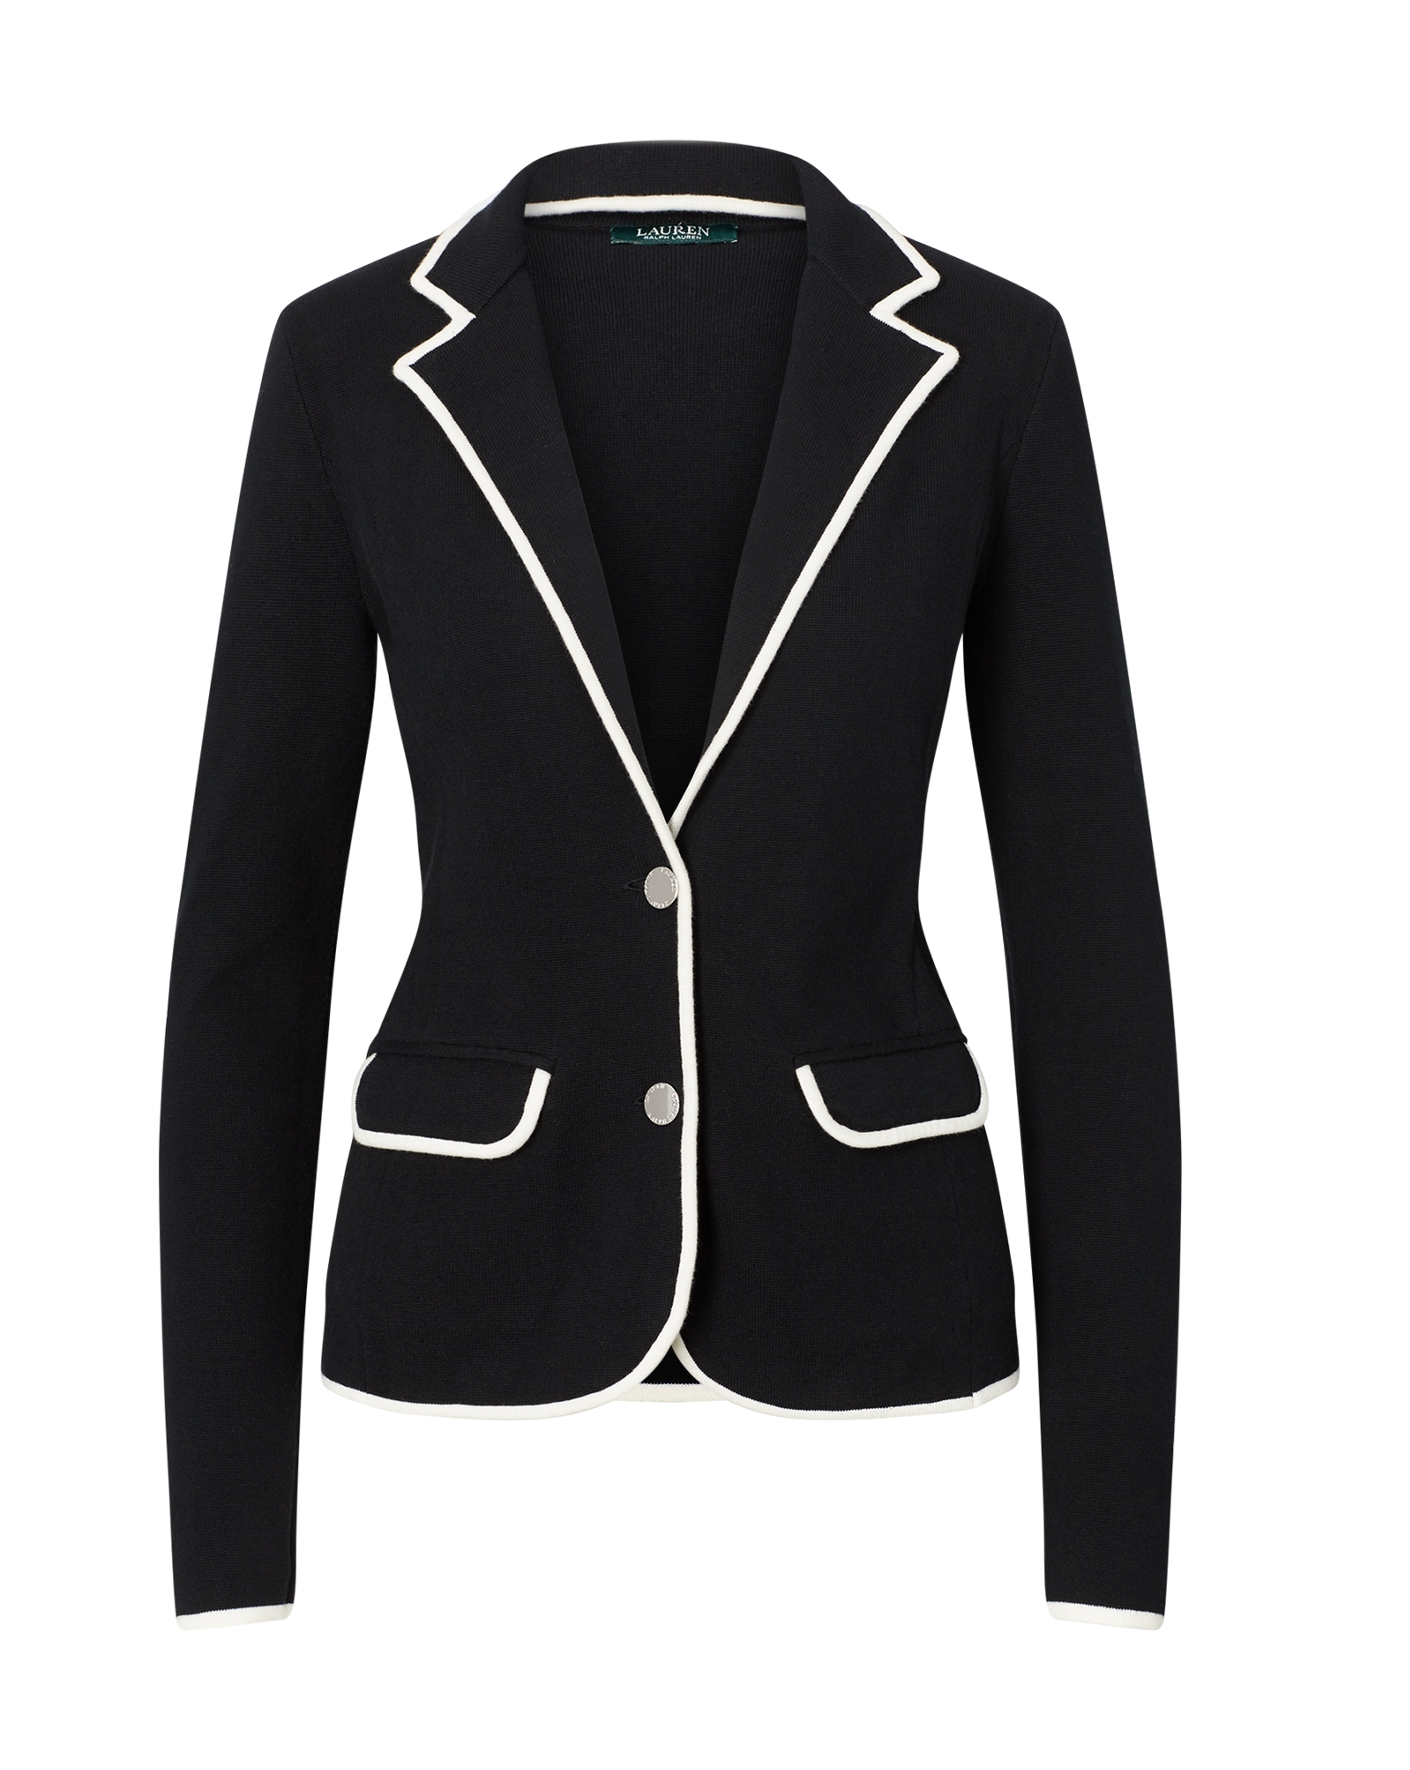 Refresh your work wardrobe with versatile women's jackets and blazers at New York & Company. Always polished and professional New York style. Refresh your work wardrobe with versatile women's jackets and blazers at New York & Company. Always polished and professional New York style. Black & White Plaid Jacket. $ $ 30% OFF OR 40%.